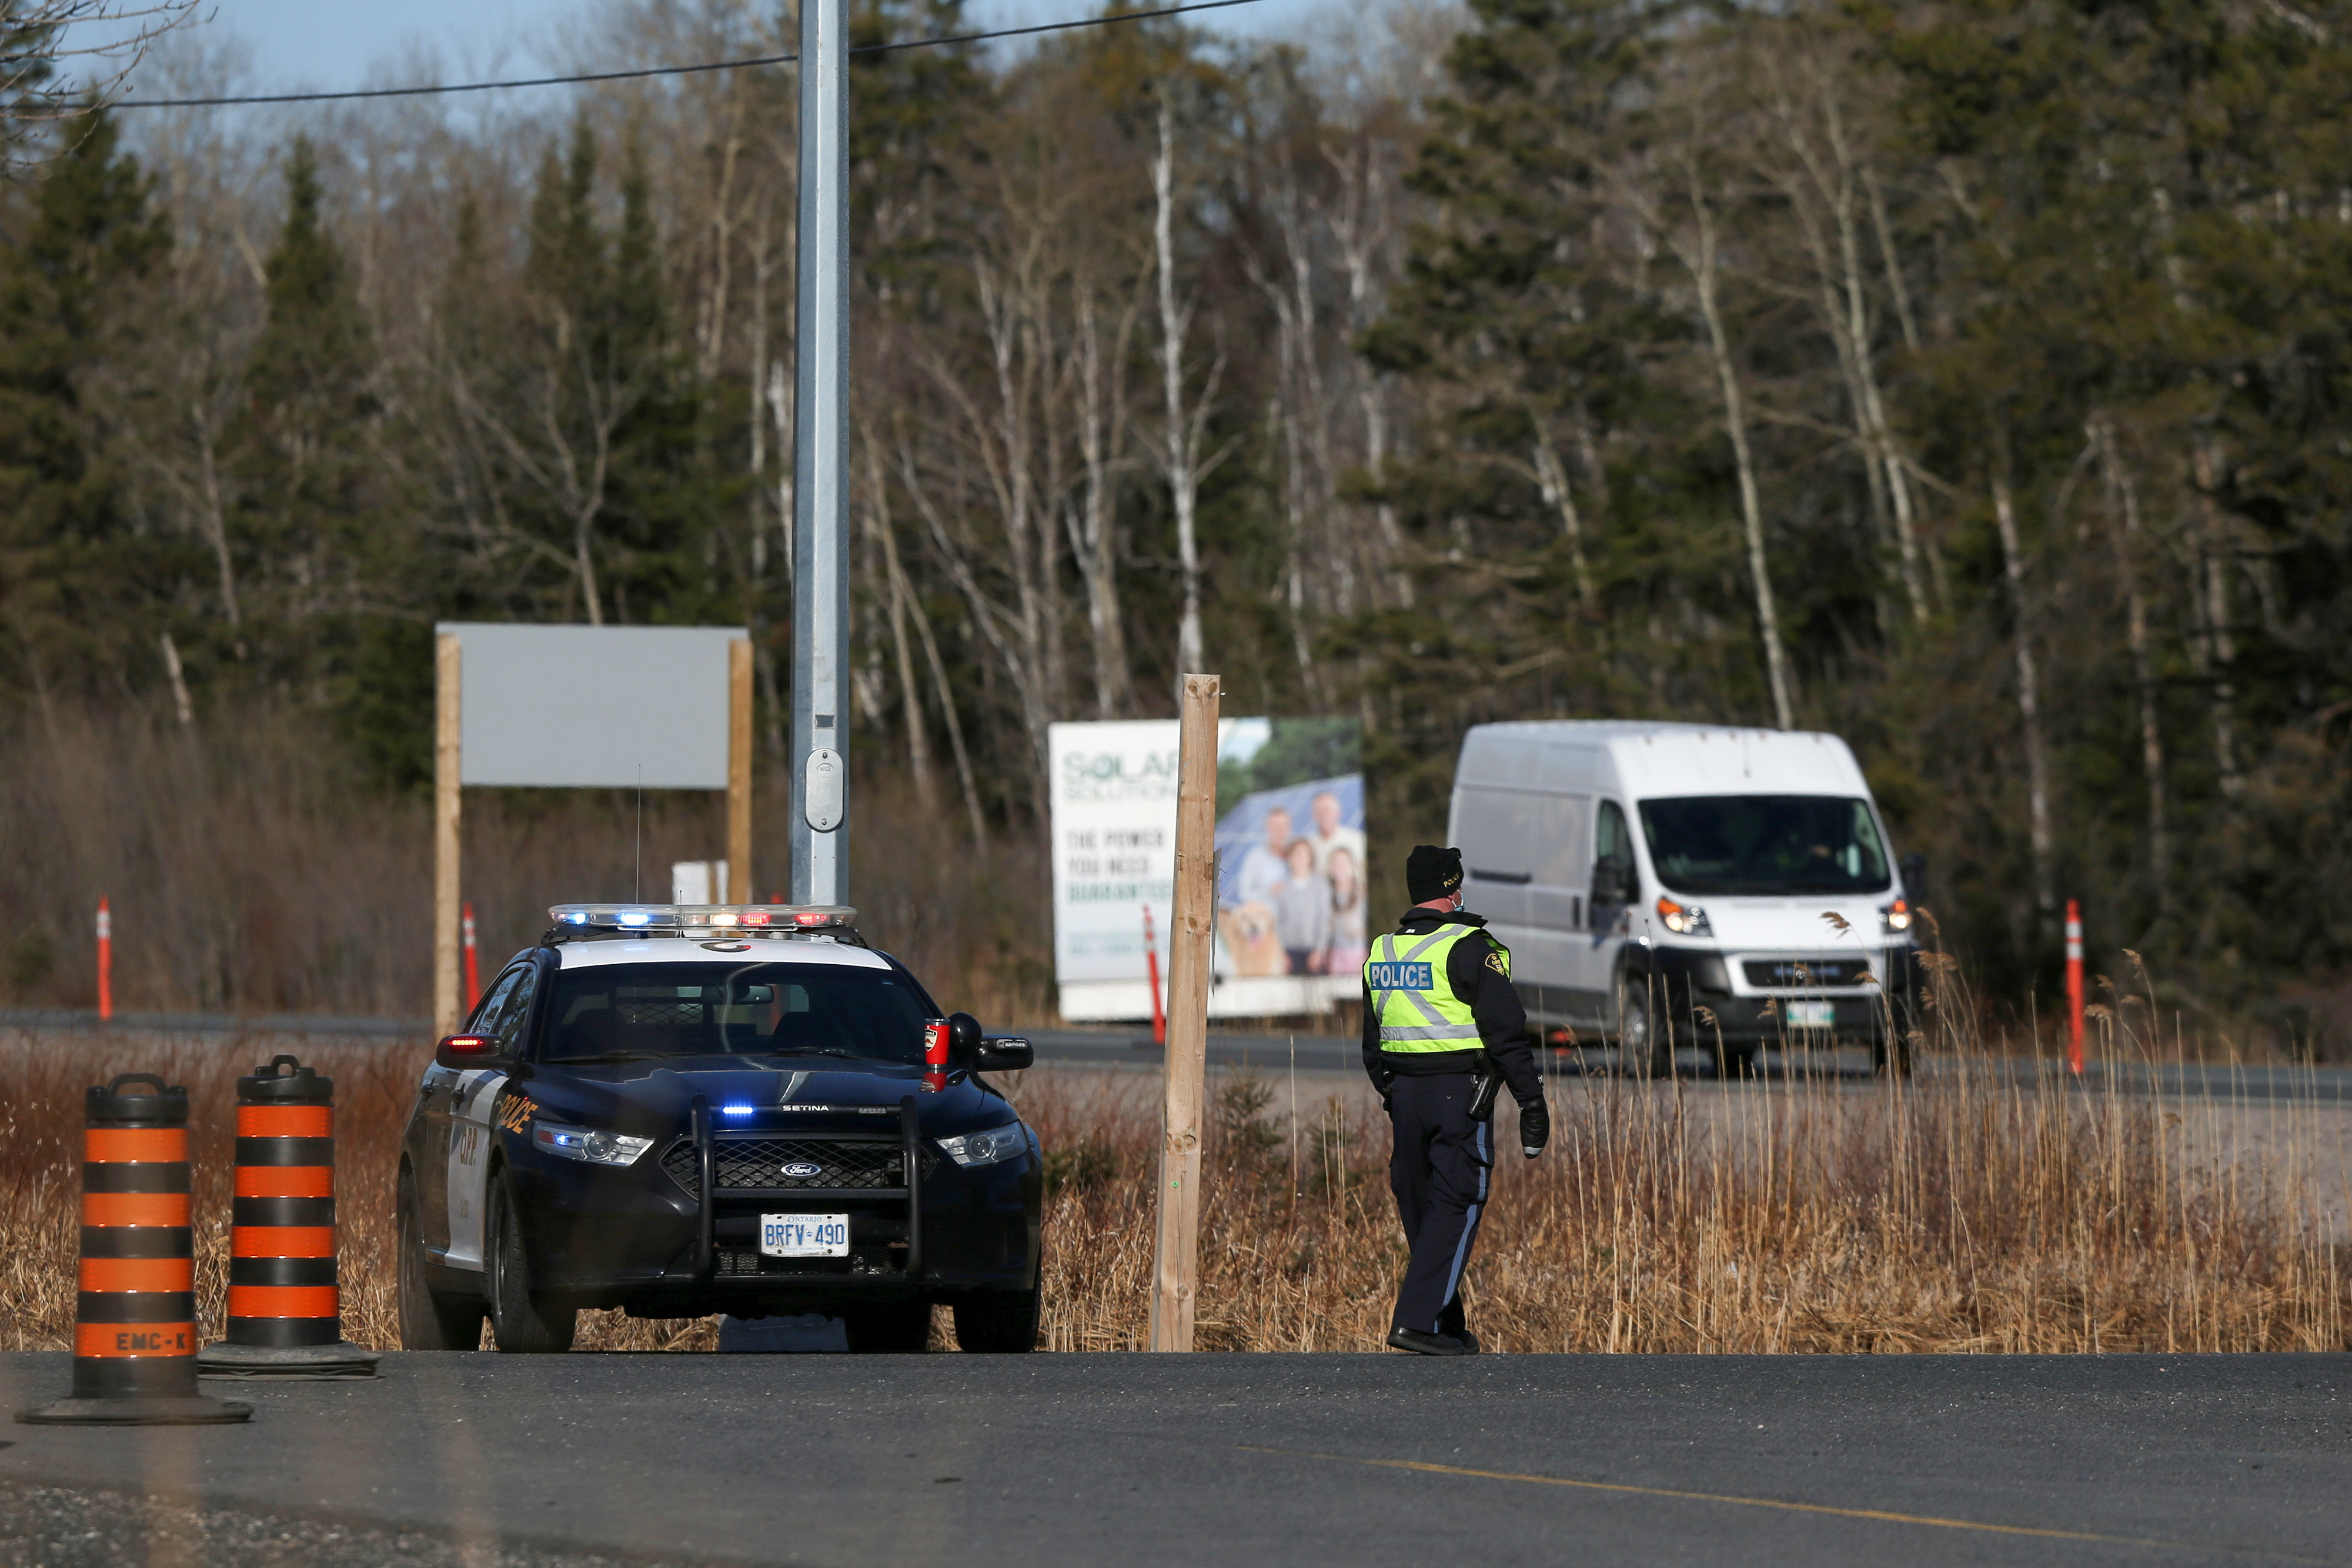 A police officer prepares to stop motorists at a checkpoint at the Manitoba-Ontario provincial boundary after new coronavirus disease (COVID-19) restrictions came into effect, limiting non-essential travel into the province of Ontario, near Whiteshell, Manitoba, Canada April 19, 2021.  REUTERS/Shannon VanRaes